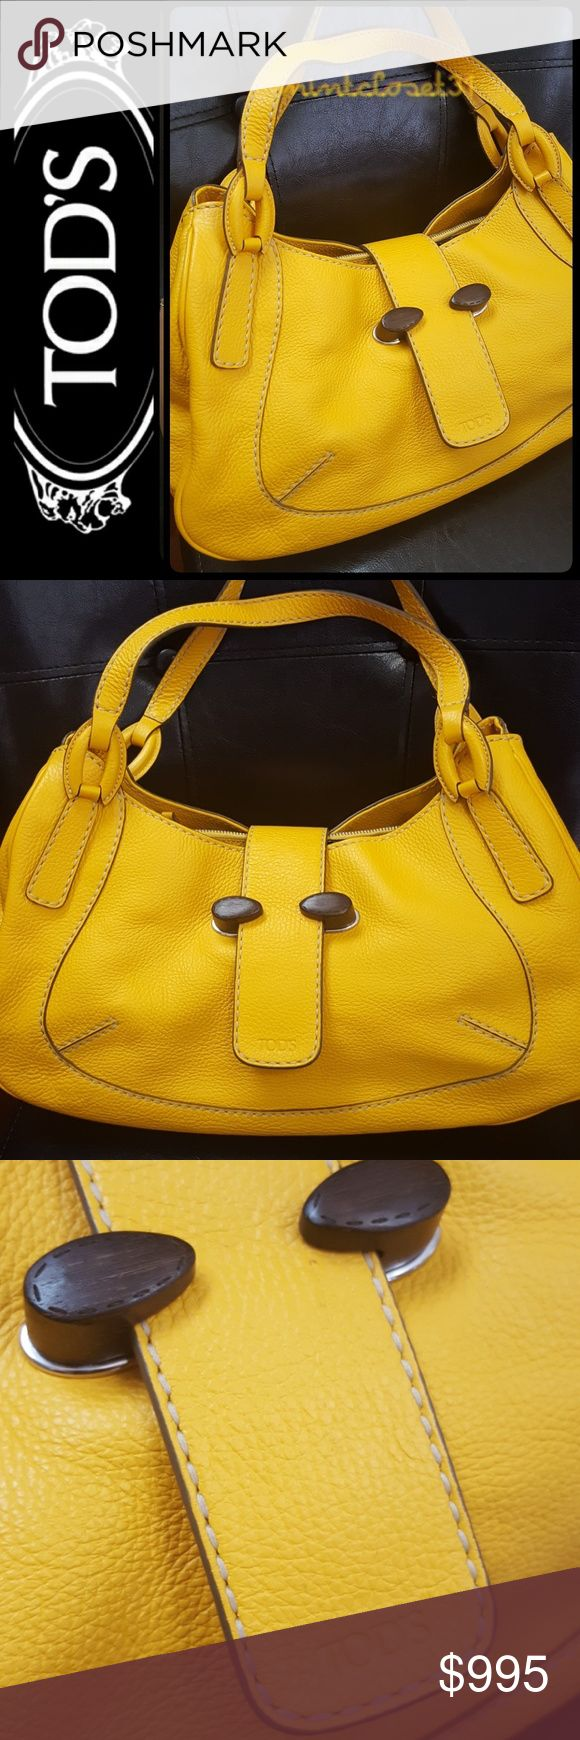 Tod's Italy Leather Bag Tod's Designer Purse in Sleek and Vibrant Chic Line Collection! Features Luxurious Pebbled Leather in Innovative Multifunctional Supple Leather in Sunny Yellow Mustard Shade! Timeless Piece of Luxury for Every Woman!  Made in Italy with Double Top Handles (Drops About 8 Inches)! Iconic Tod's Logo Print on Front Flap Leather! Tonal Stitching DetailsThroughout! Open Top with 2 Separate open Compartments with 1 Middle Zip Compartment! Fully Lined Interior! Barely used in…